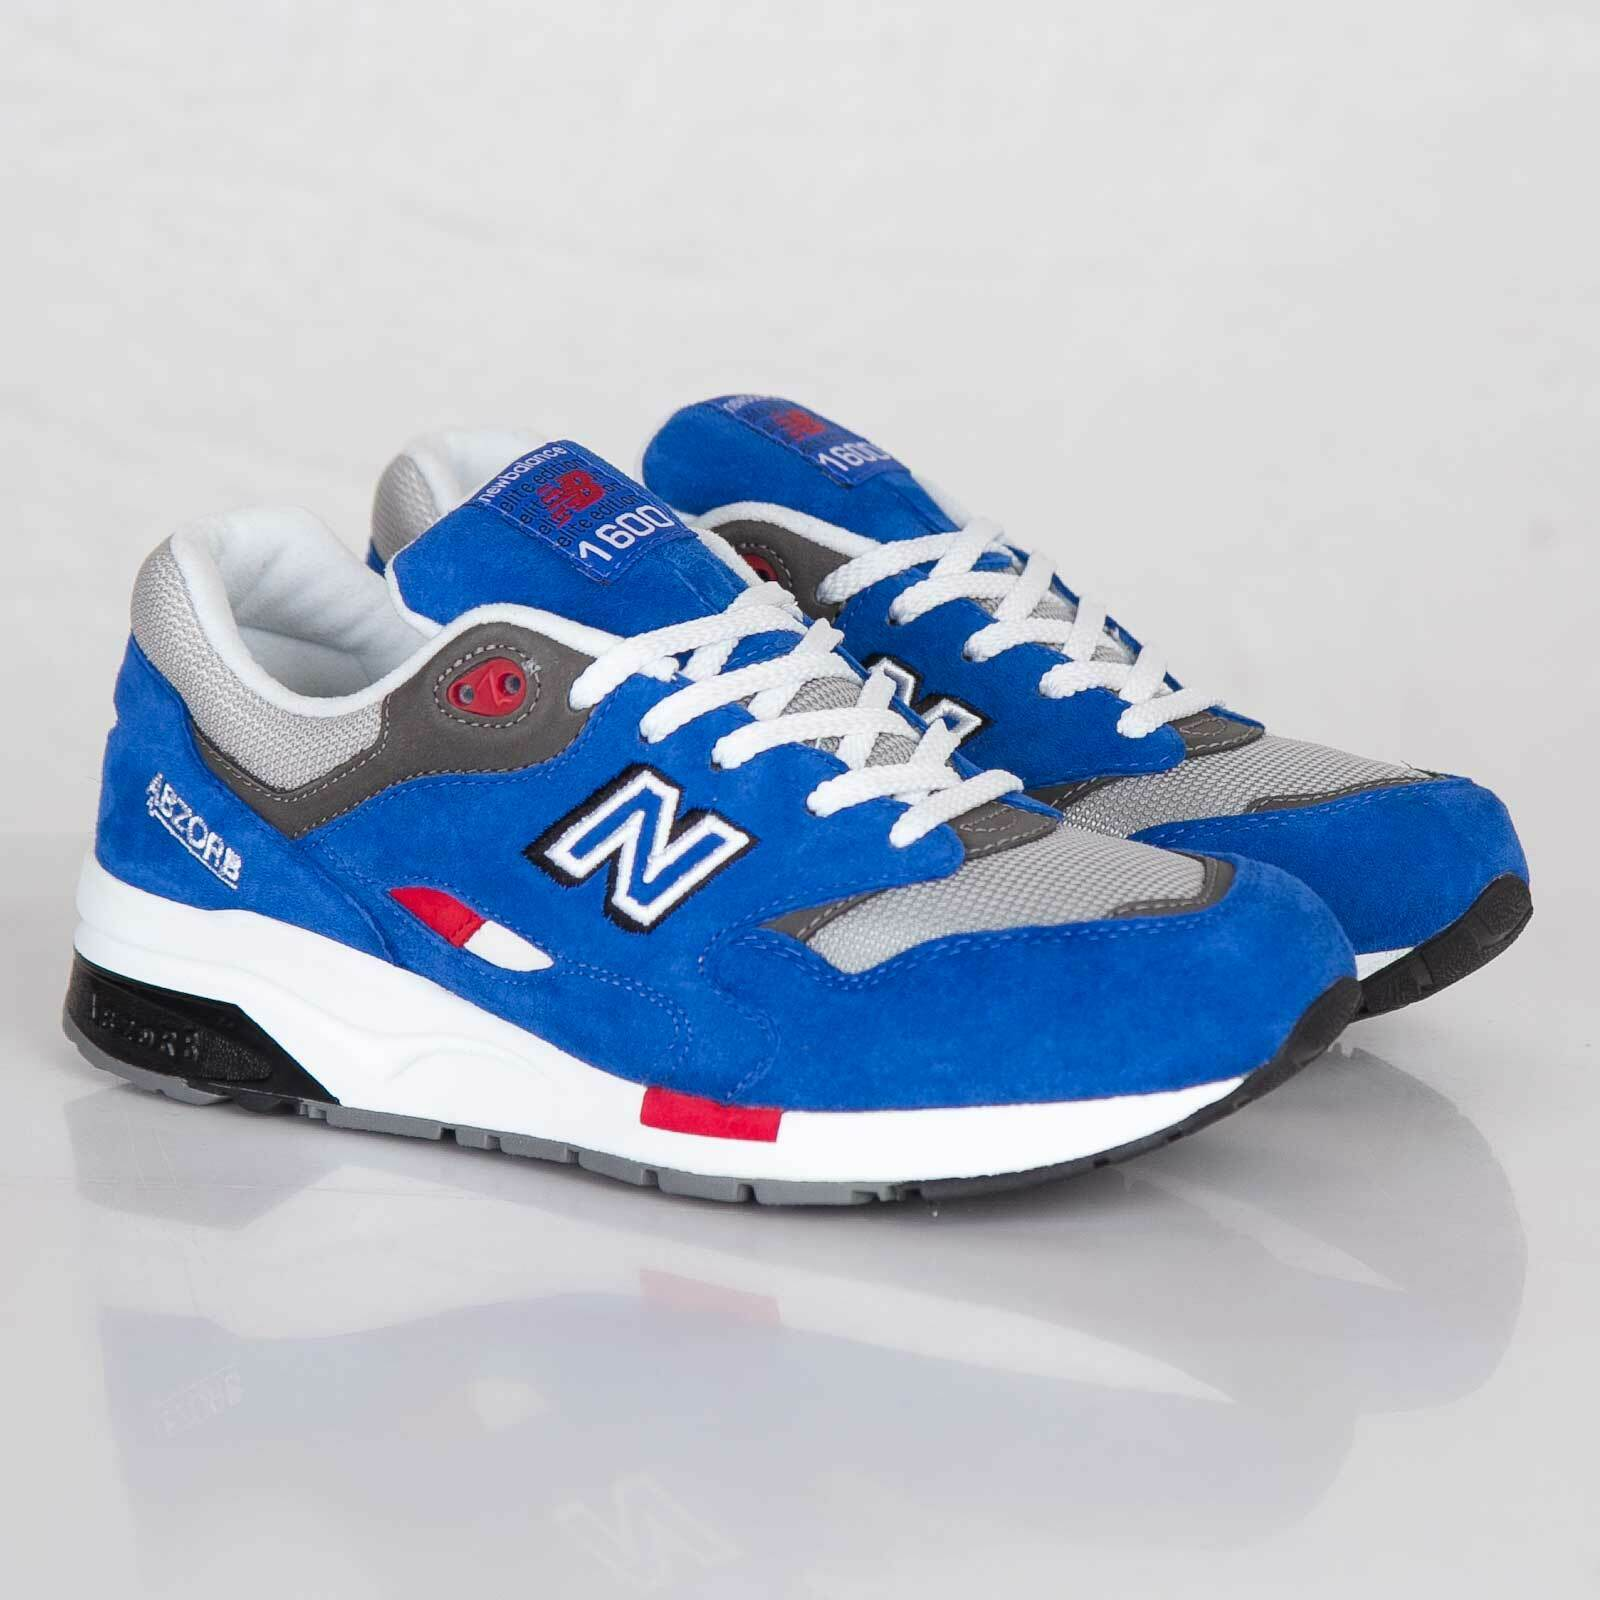 New Balance CM1600 CM1600BB Barber Shop bluee Men SZ 7.5 - 9.5